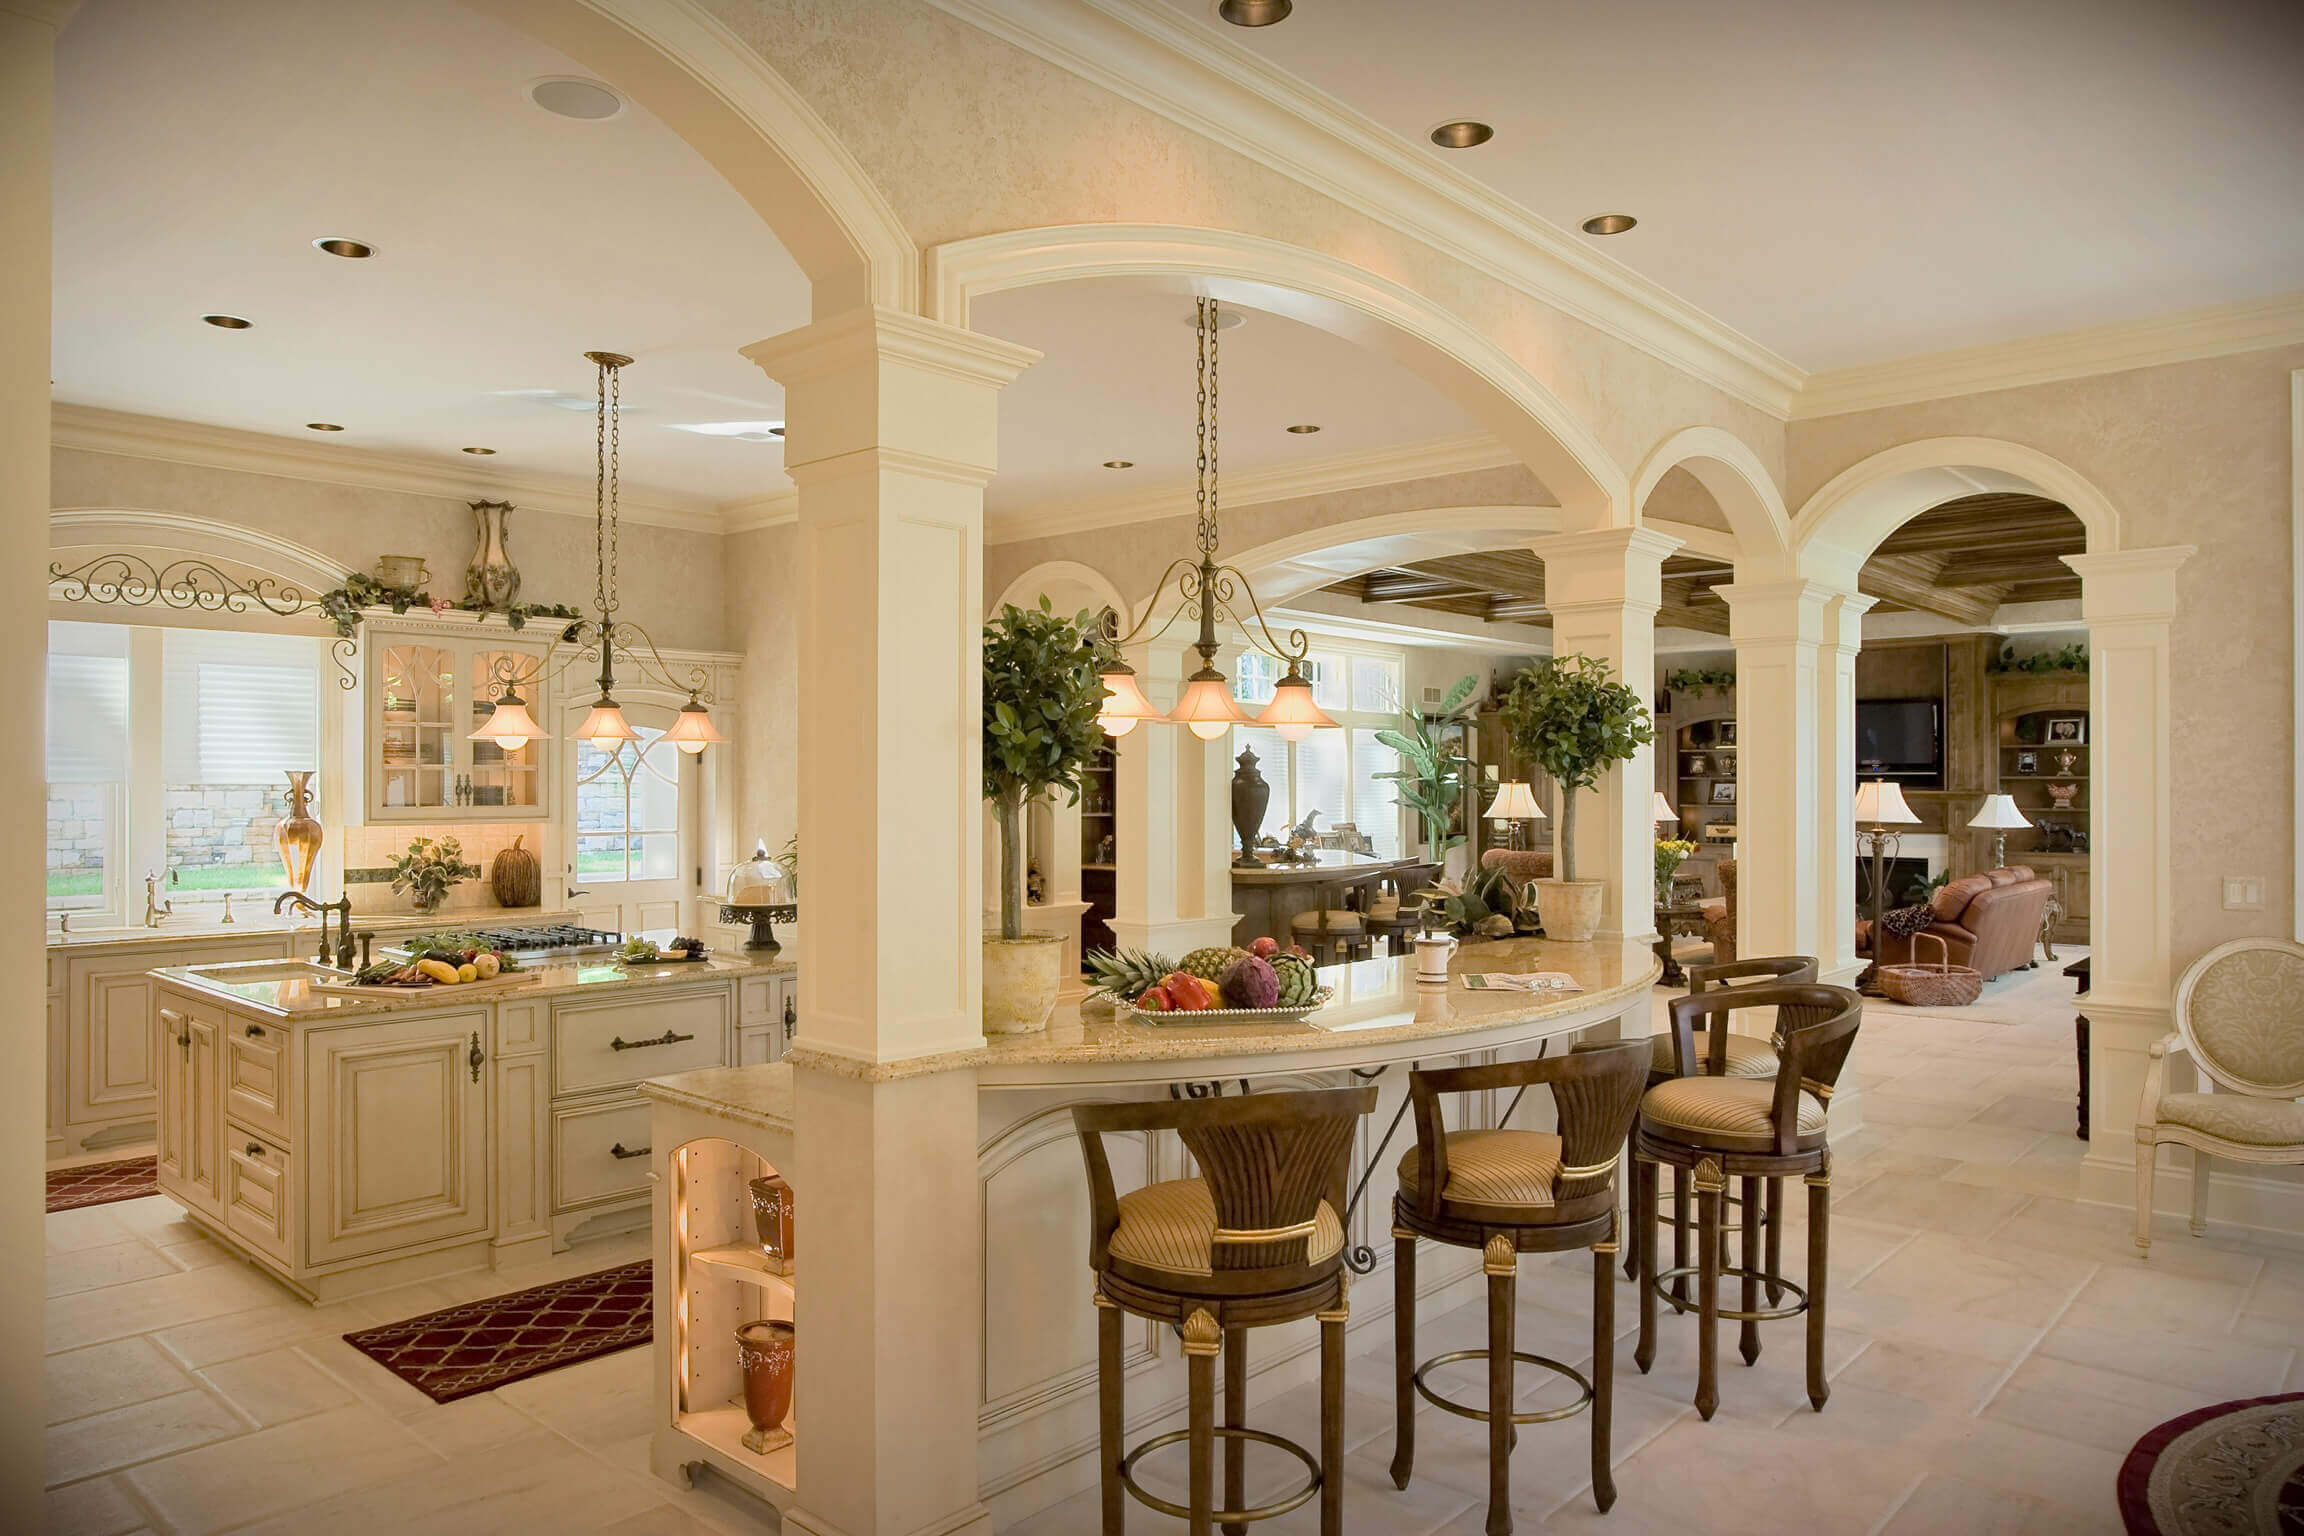 Top 65 luxury kitchen design ideas exclusive gallery for Luxury home kitchen designs